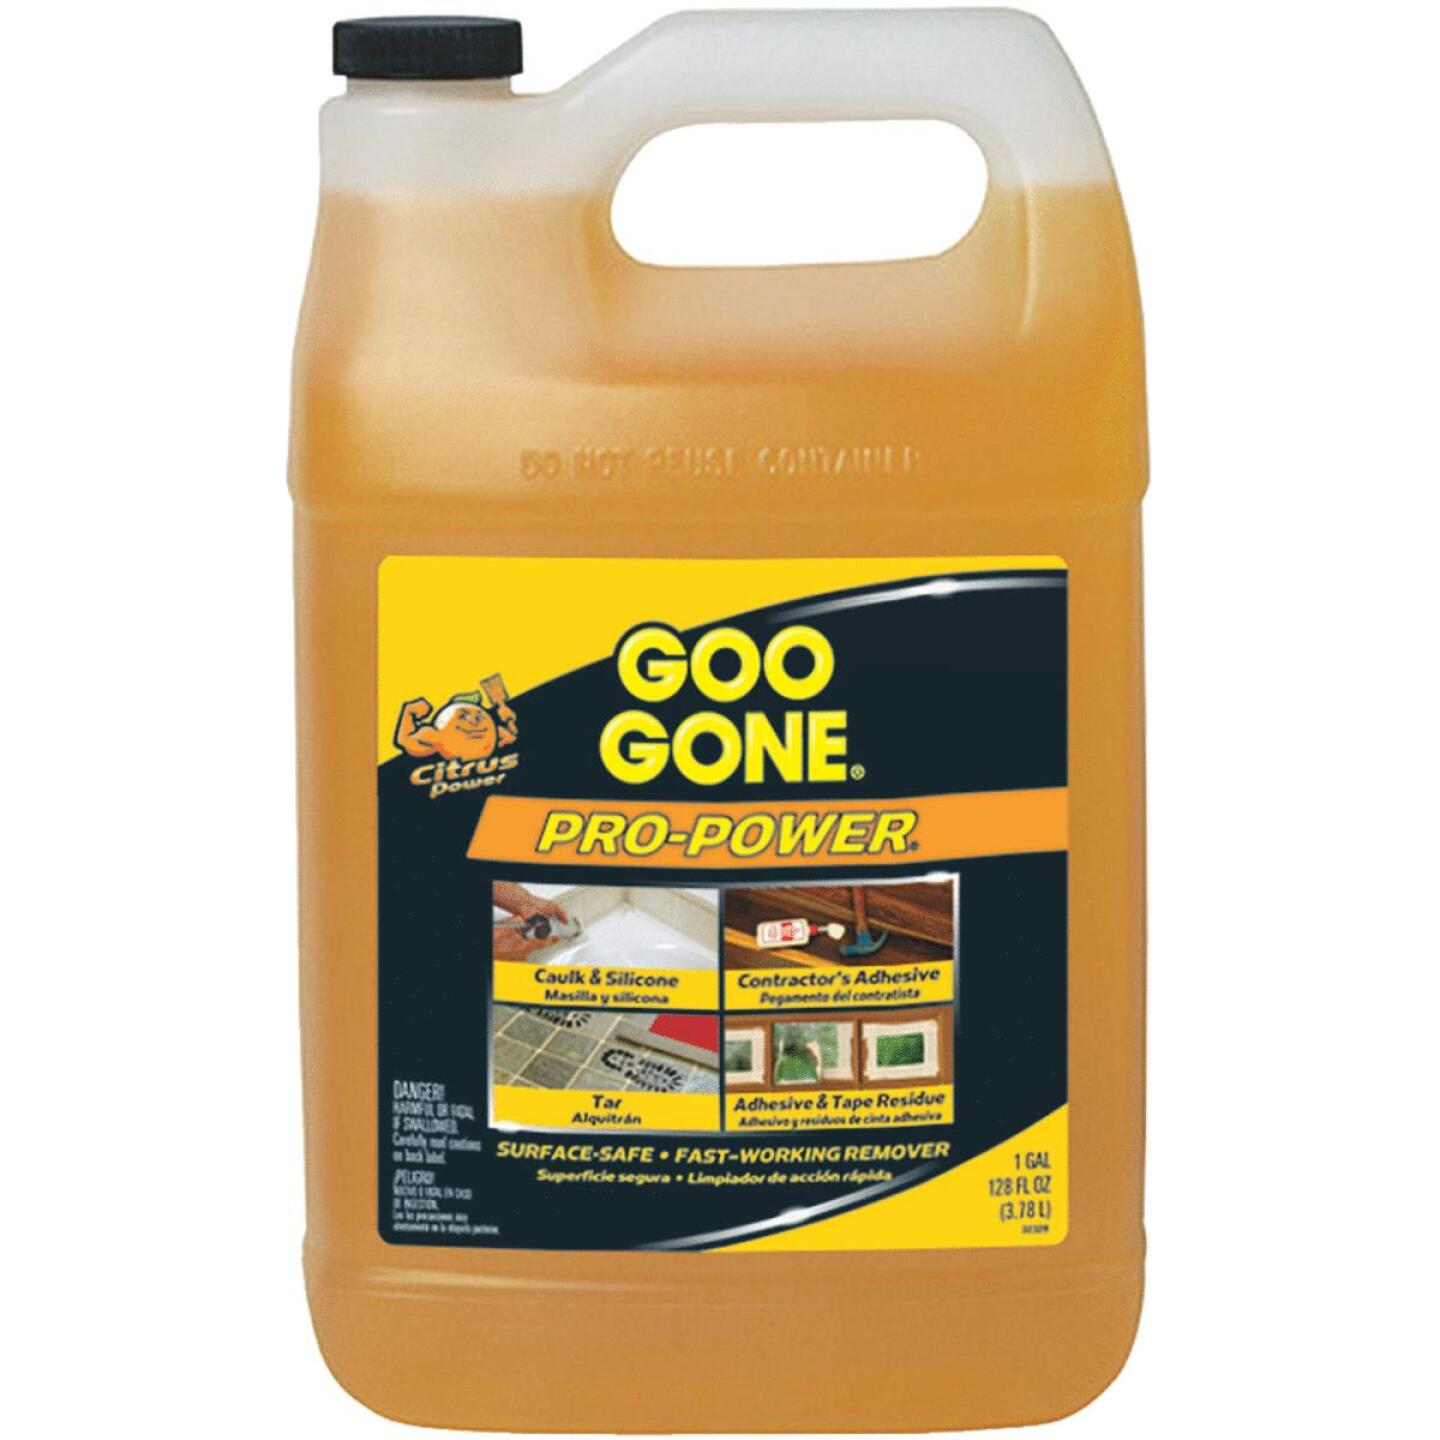 Goo Gone 1 Gal. Pro-Power Adhesive Remover Image 38